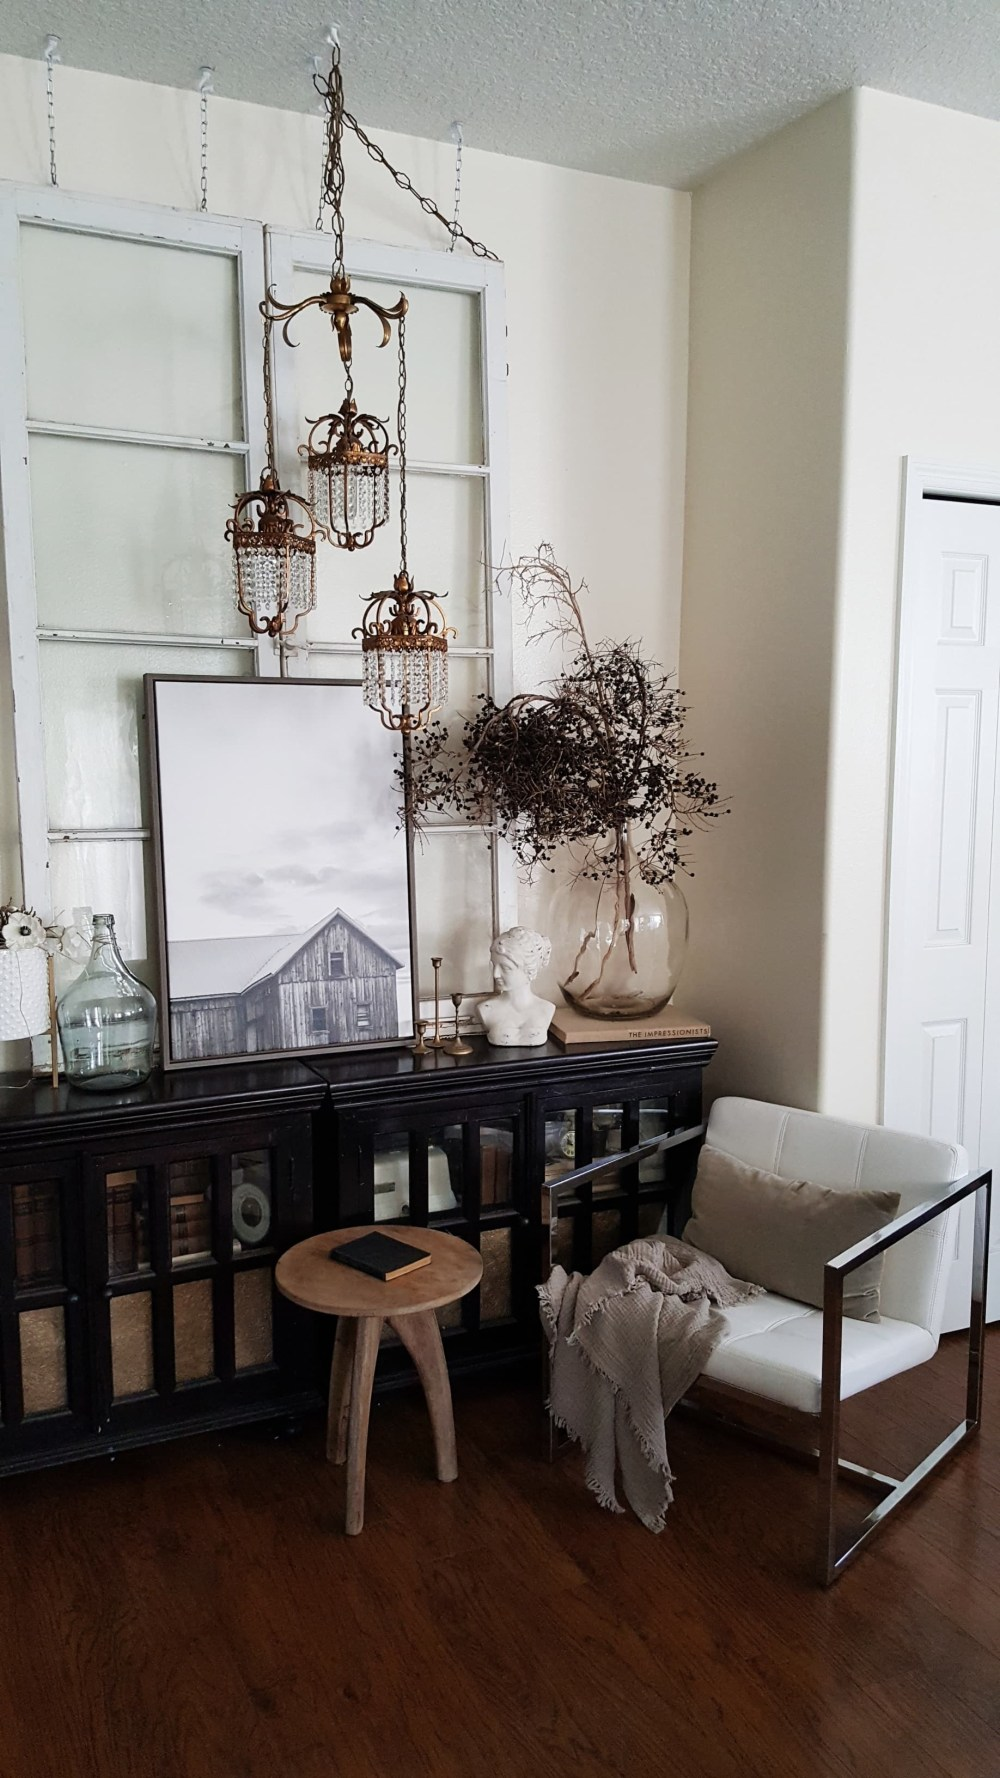 Modern Farmhouse Eclectic Industrial Decor Design Vintage Antiques Doors Chandelier Rugs Living Room Inspiration Black and White Scandinavian Decor Decorating ideas Fall Winter